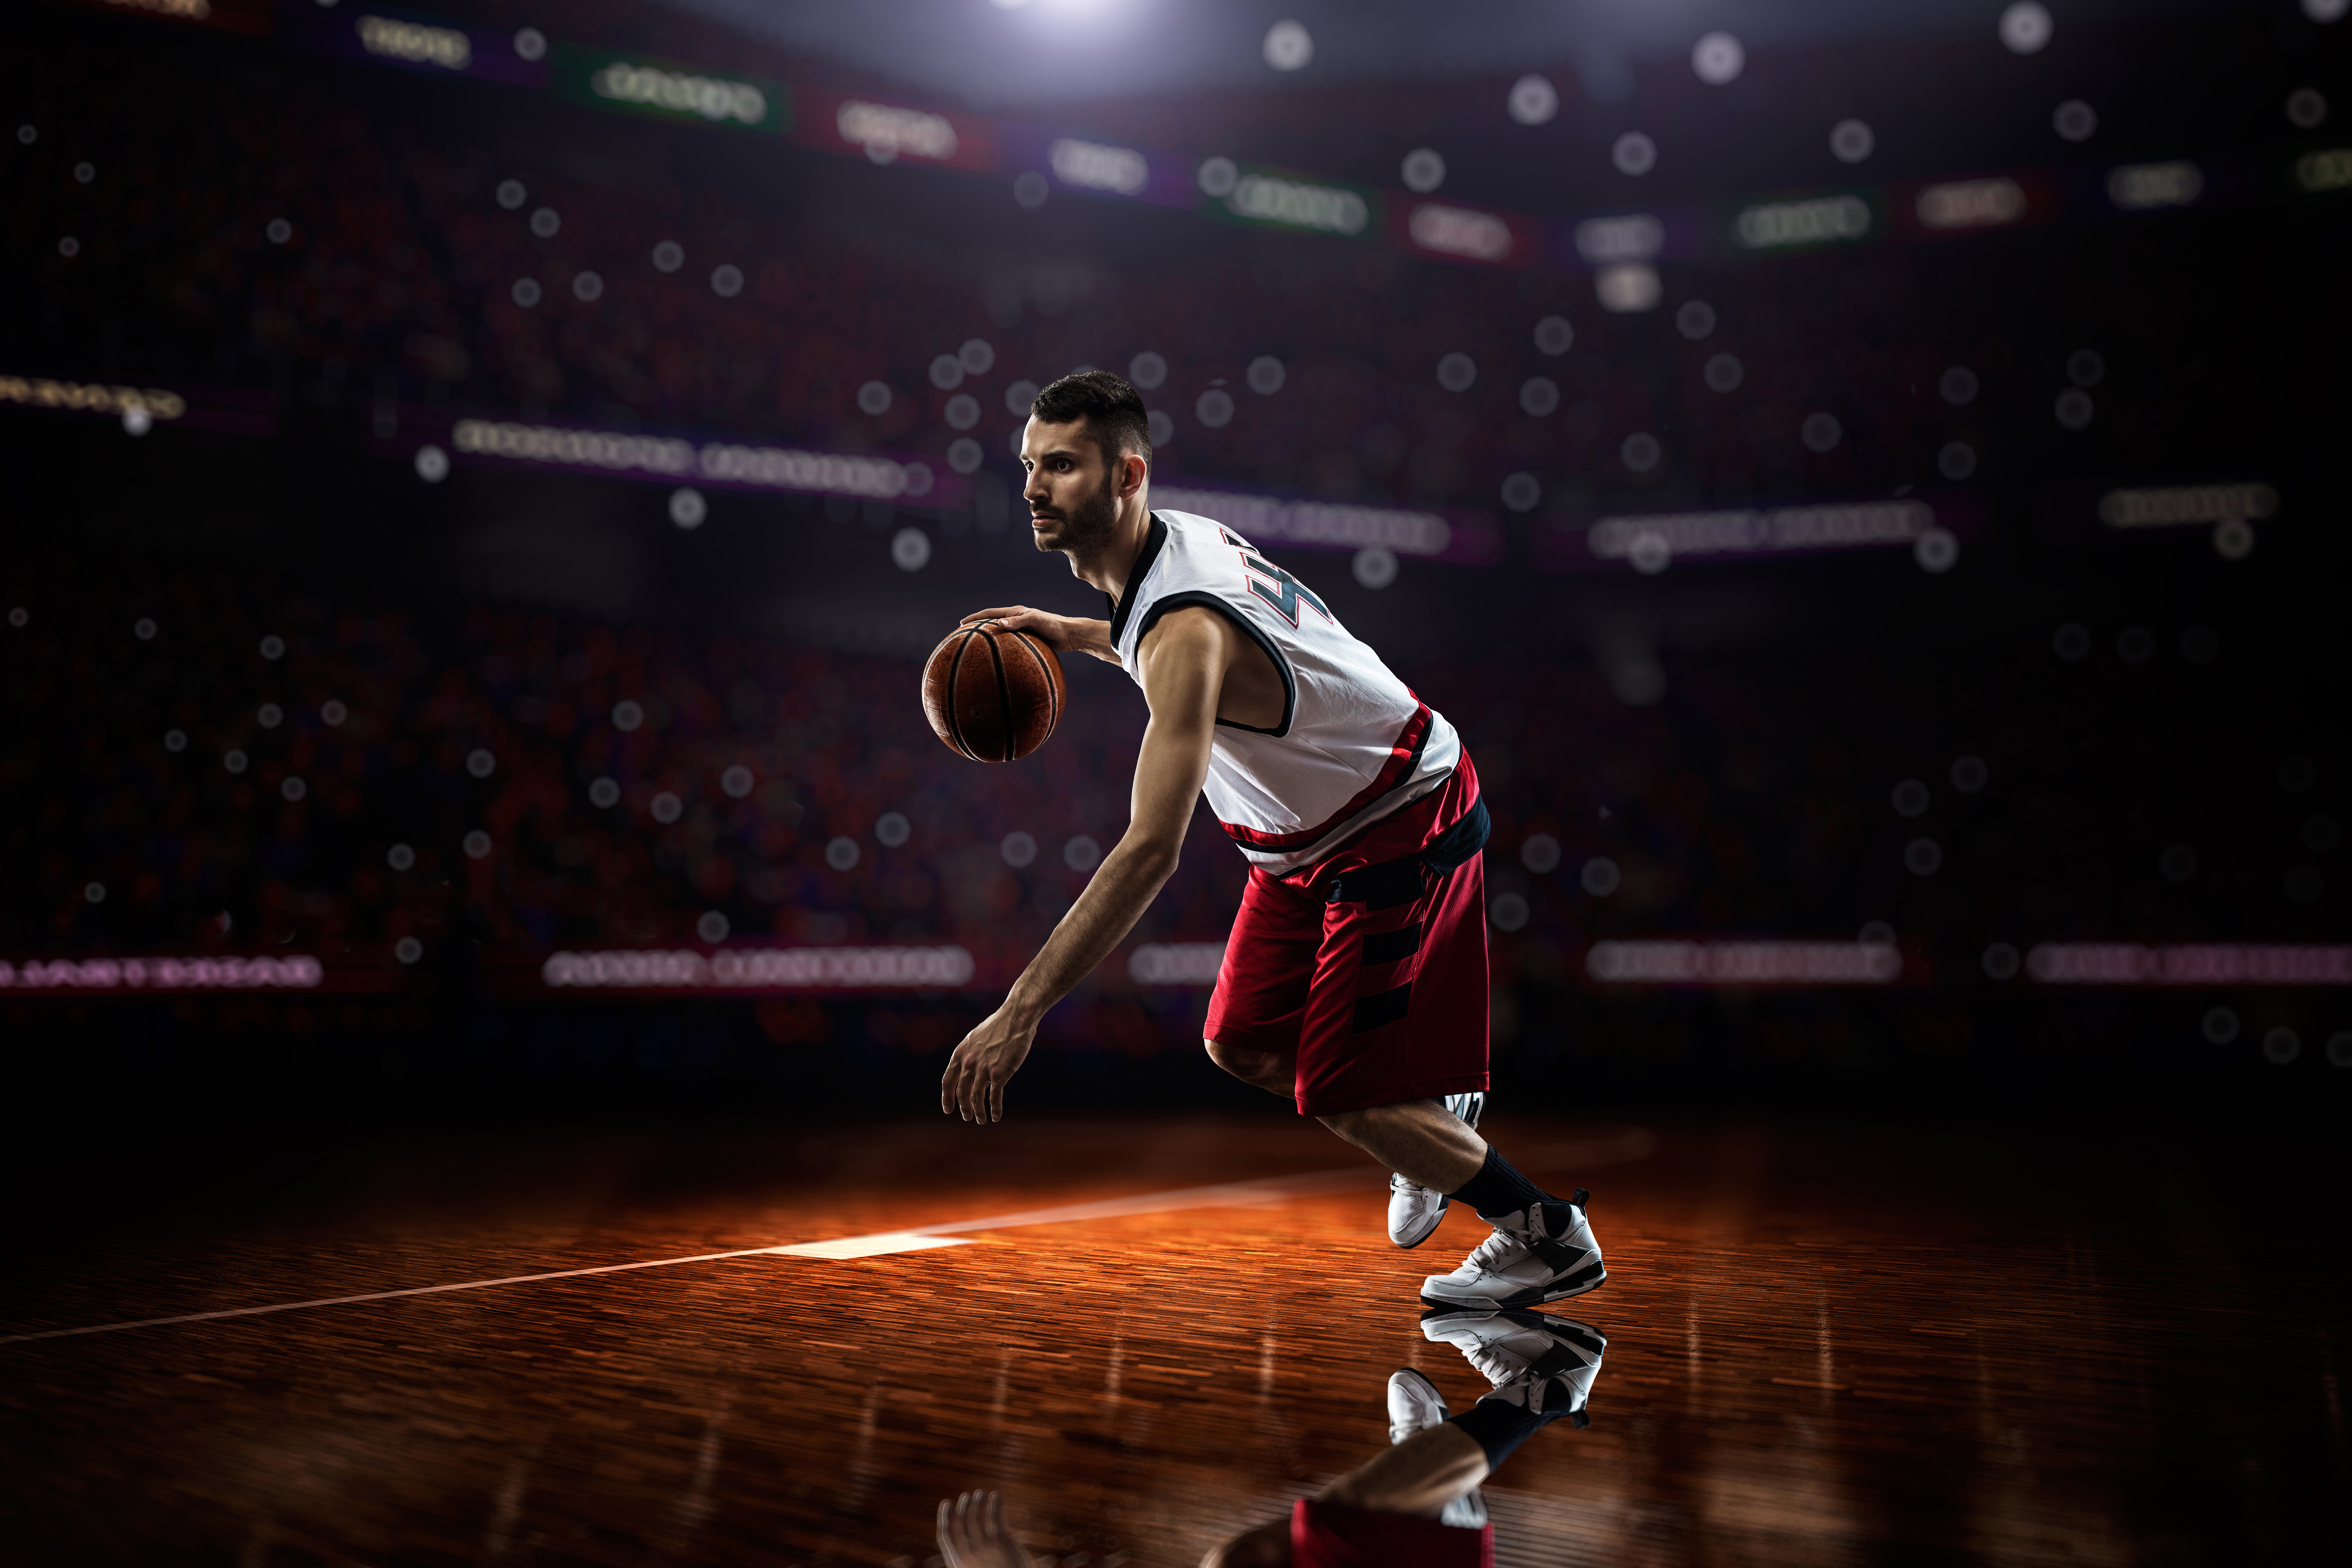 Basketball Player 8k, HD Sports, 4k Wallpapers, Images